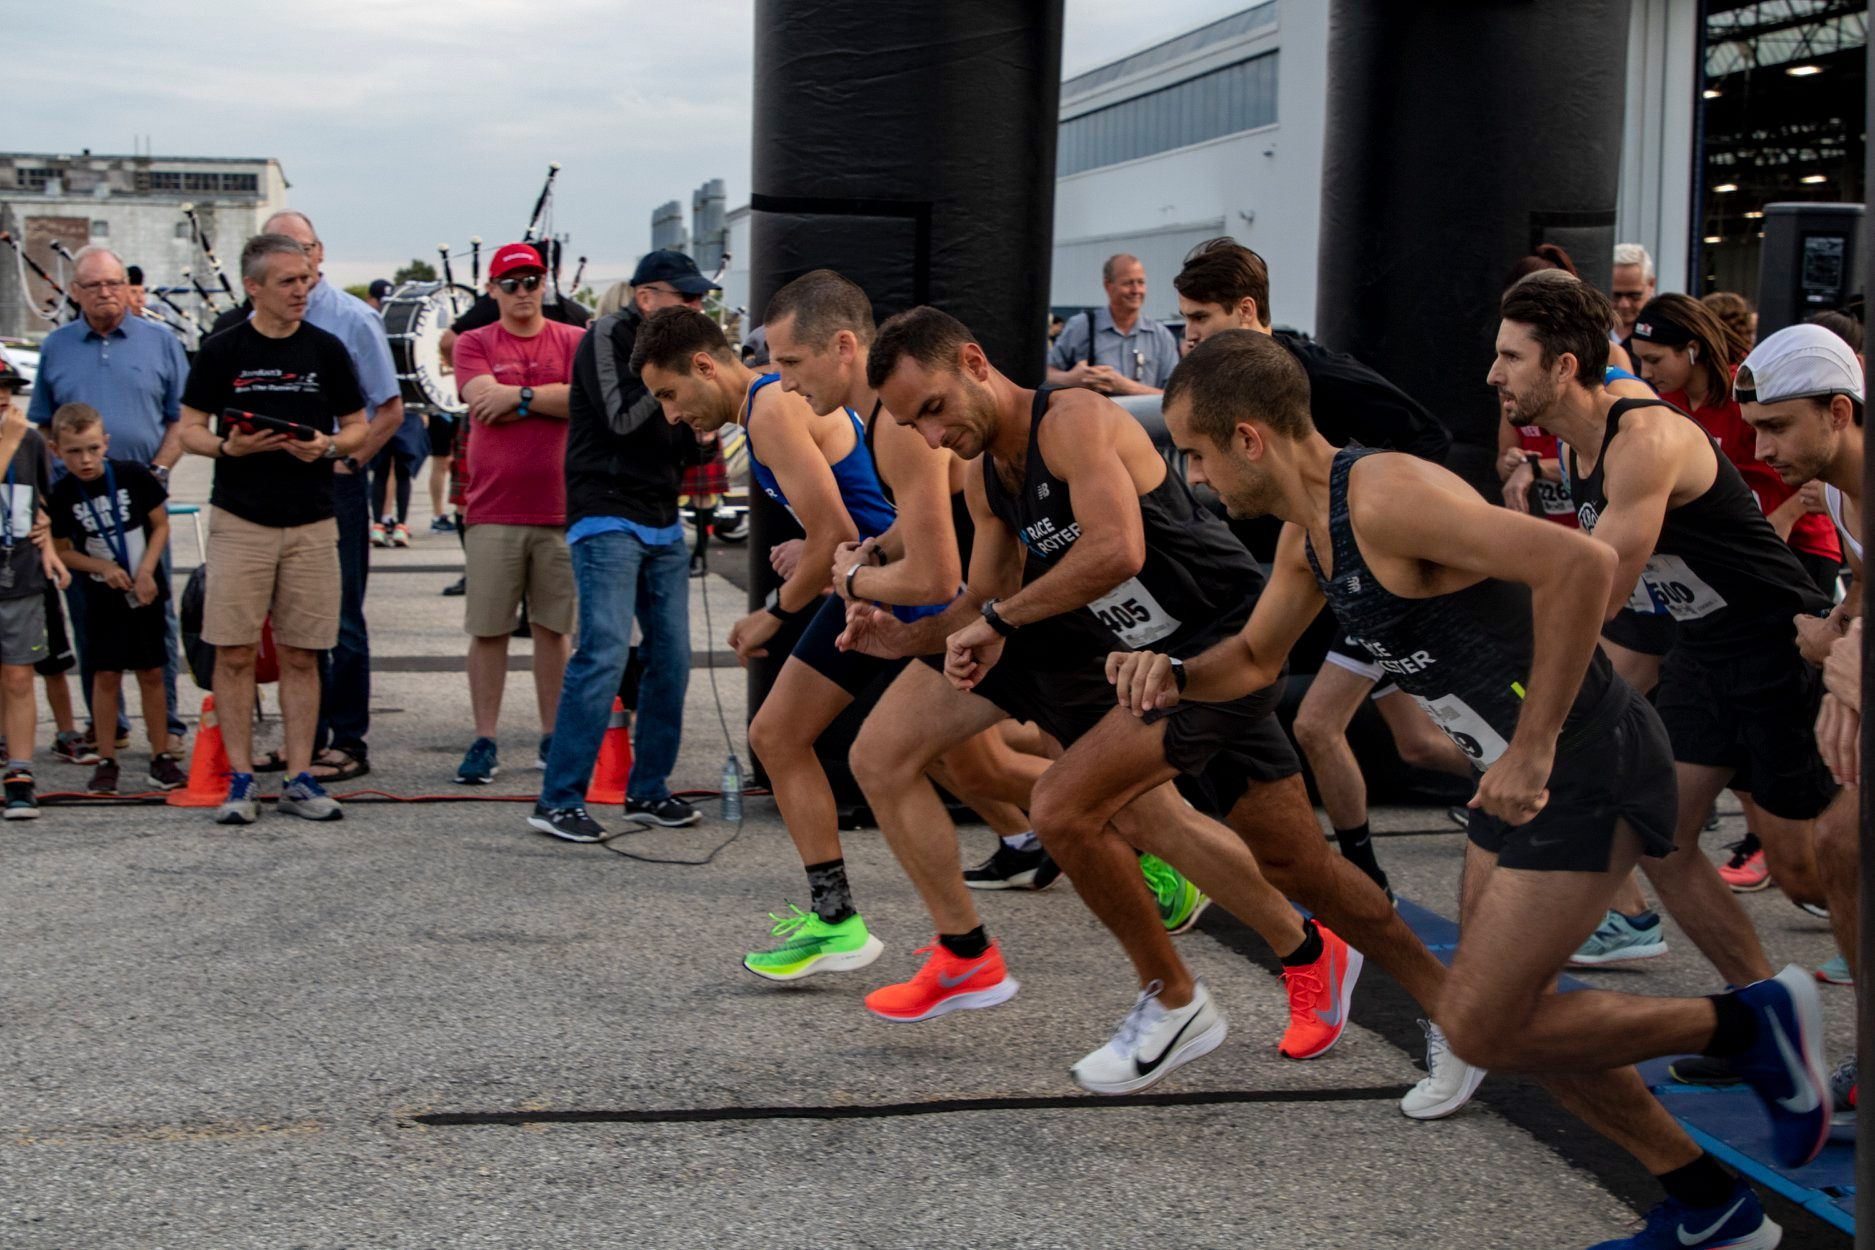 A group of men in colourful shoes get into starting position for Jordan's Run.